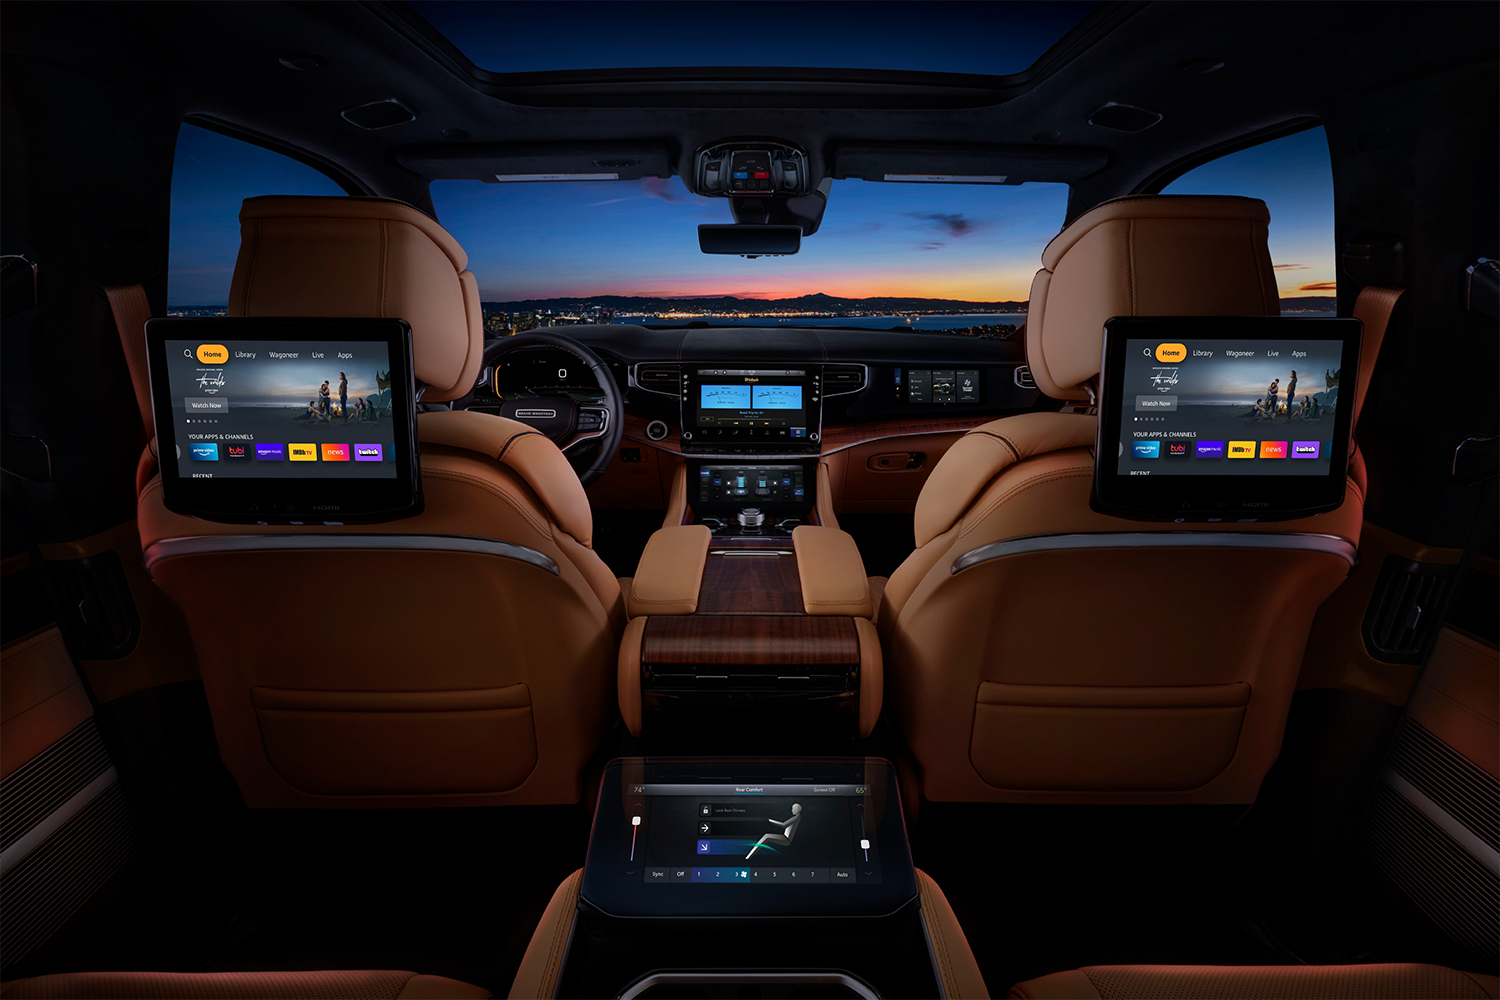 The interior of the 2022 Jeep Grand Wagoneer SUV shot from the second row, showing TV screens with Amazon Fire TV for Auto